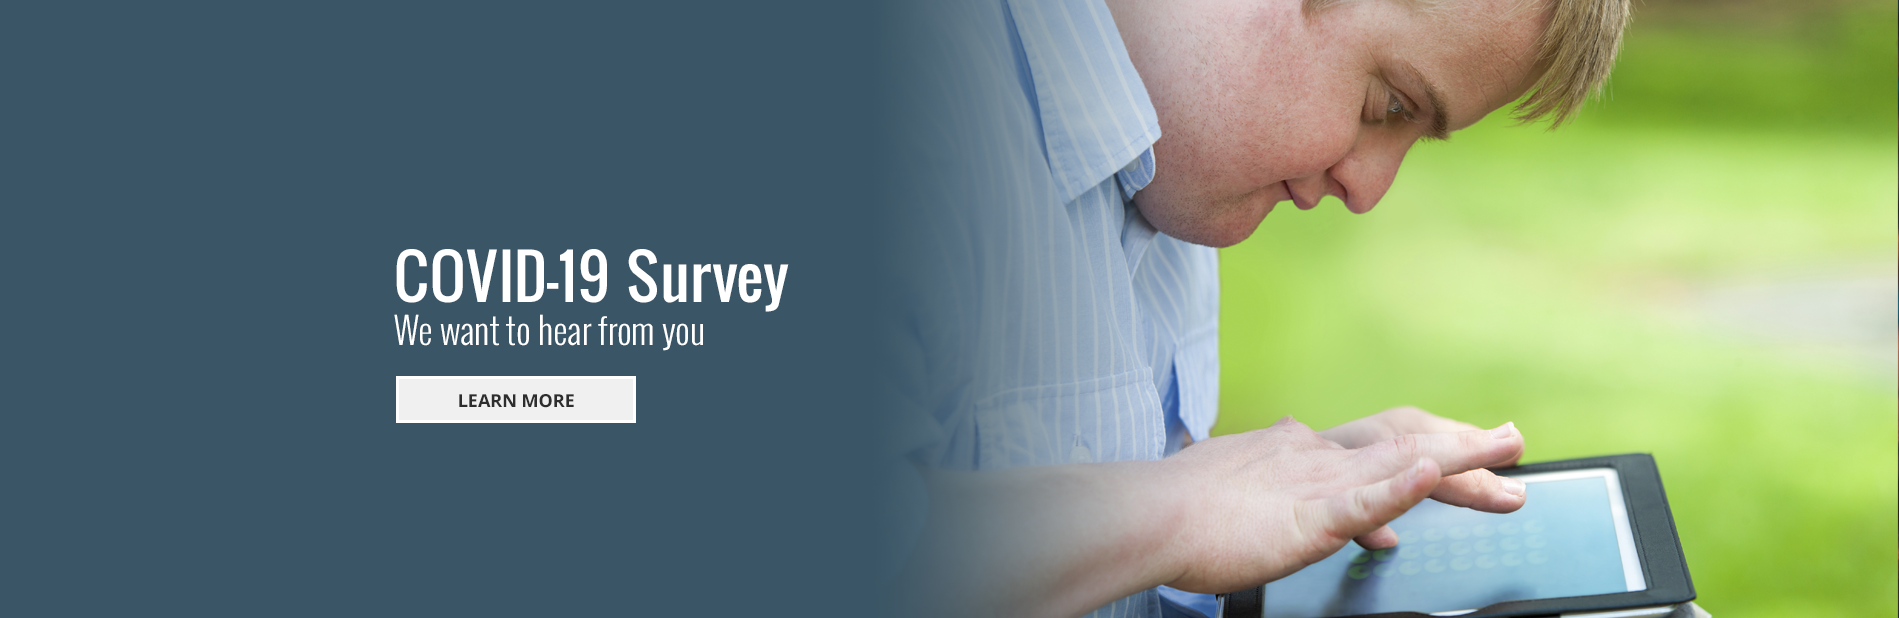 COVid-19 Survey - We want to hear from you.  Follow the link to learn more.